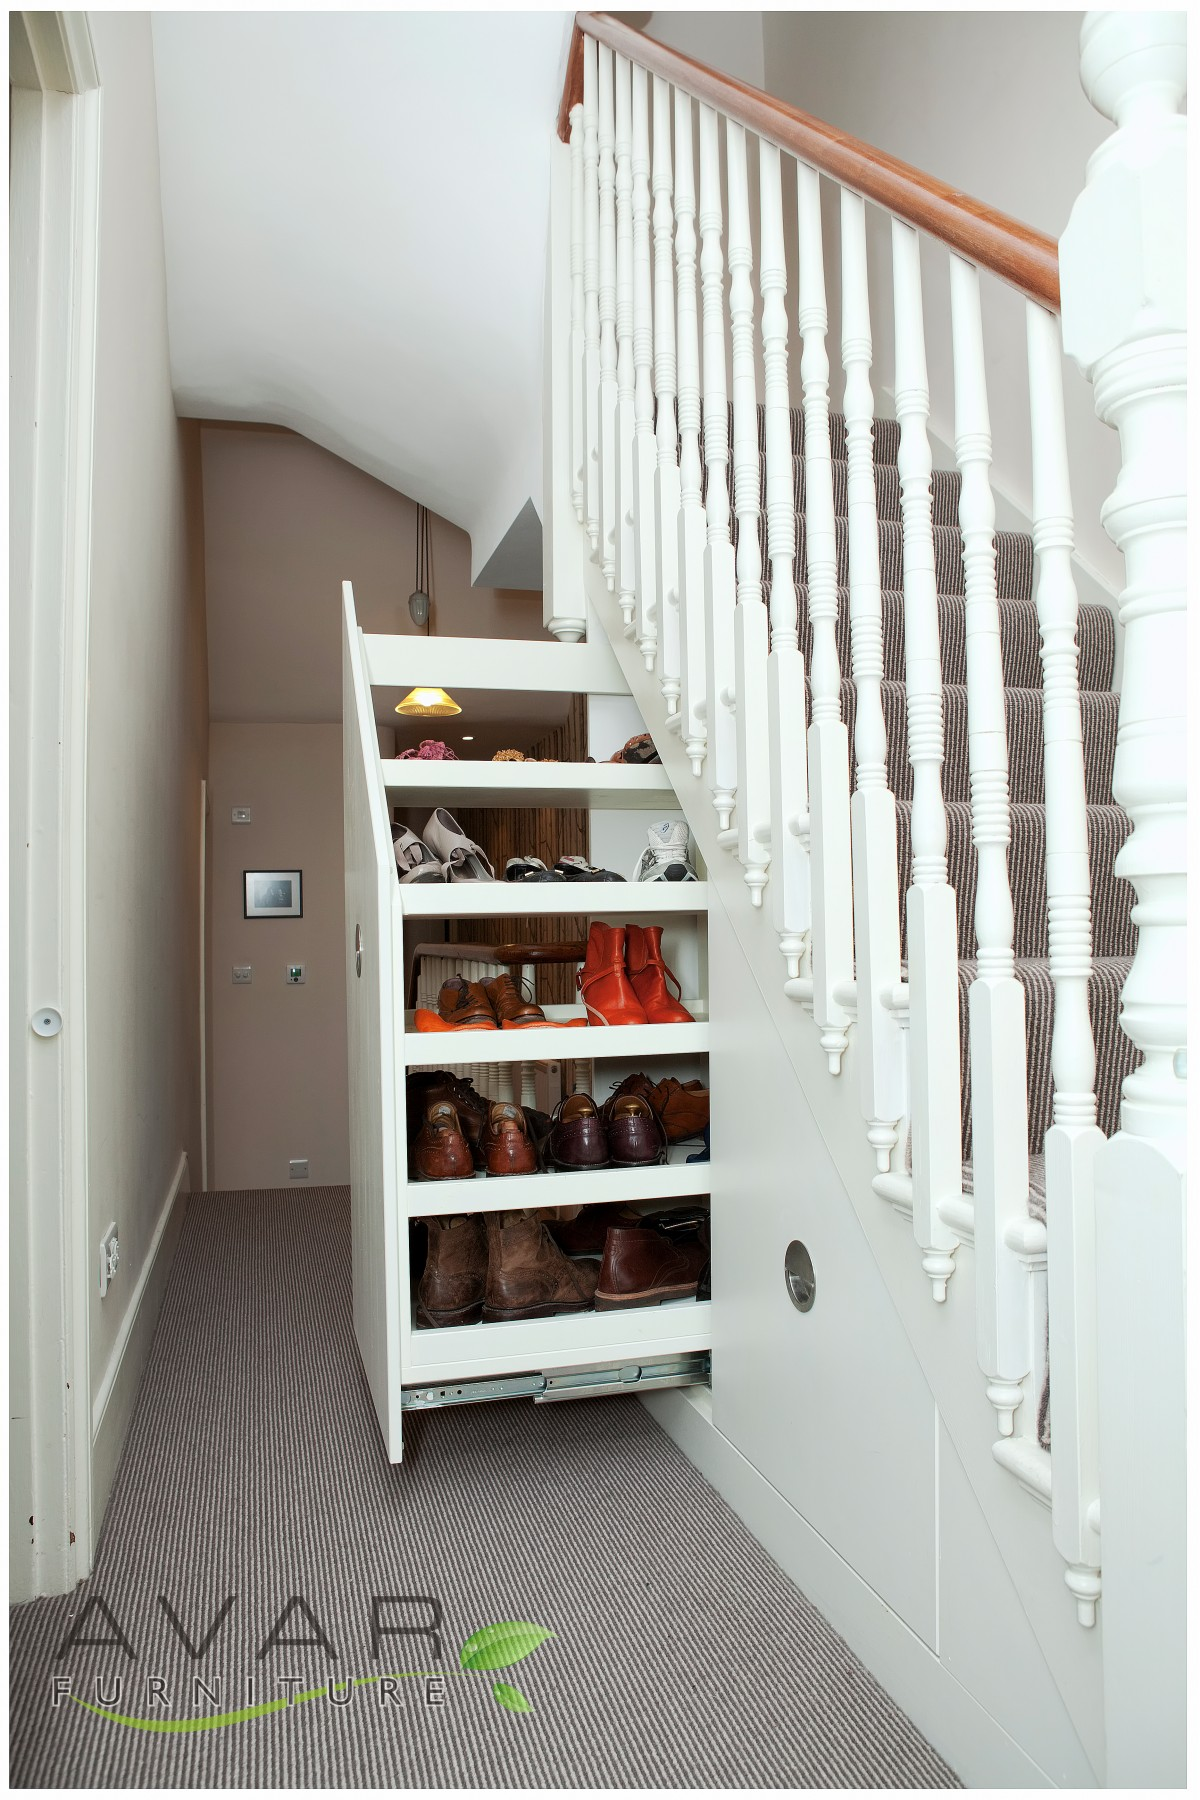 Einbauschrank Selber Bauen Nische ƸӜƷ Under Stairs Storage Ideas Gallery 14 North London